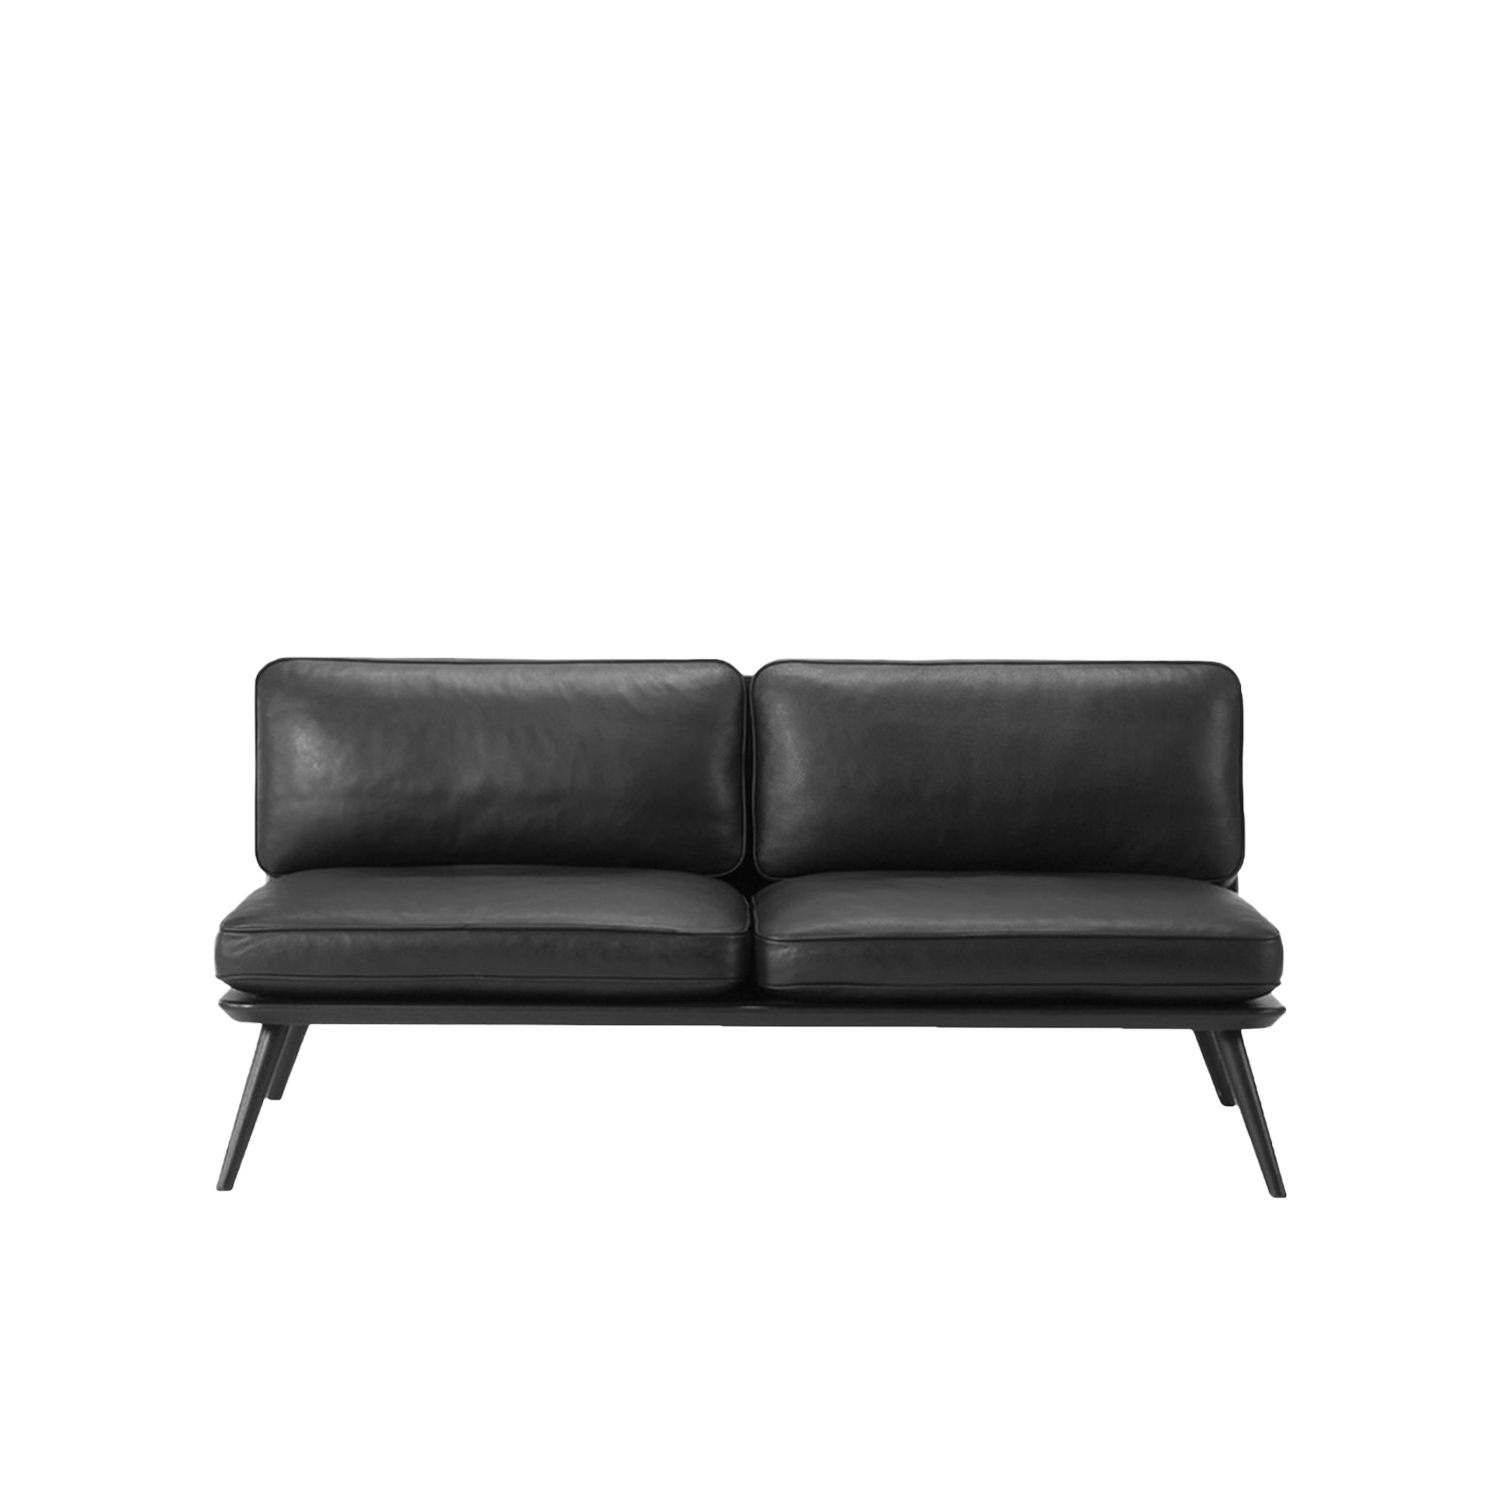 Spine Lounge Suite Sofa 2 Seater - Spine Lounge Suite Sofa pays respect to the traditions of hand upholstering to which Fredericia built its name on, while offering a modern flavour in its own succinct and simple way.  Curved corners, ample cushions and somewhat low to the ground, Spine Lounge is a testament to simplicity as the ultimate form of exclusivity. What began as a Spine Lounge Chair for a Michelin-star restaurant has expanded into an entire series with the same signature approach, encompassing the Spine Lounge Suite, Spine Petit, Spine Daybed, Spine Sofa and Spine Bench. An array of variants that easily lend themselves to all kinds of scenarios in the high-end hospitality and retail sector, as well as private residences.   What they all share is a soft, plush cushioned side for comfort supported by a singular structure in solid wood. Incorporated into the structure are slightly splayed legs at either end, which signal a sense of relaxed informality.   The upholstery draws on Fredericia's signature techniques, with a modern spin. Discrete details on various versions, such as the leather piping around the sides, add to the series' subtle sophistication.   The result is a succinct design that's soft yet solid. Fluid yet structured. Poetic yet purposeful. Able to exude, at a glance, an ambience of elegance.  | Matter of Stuff